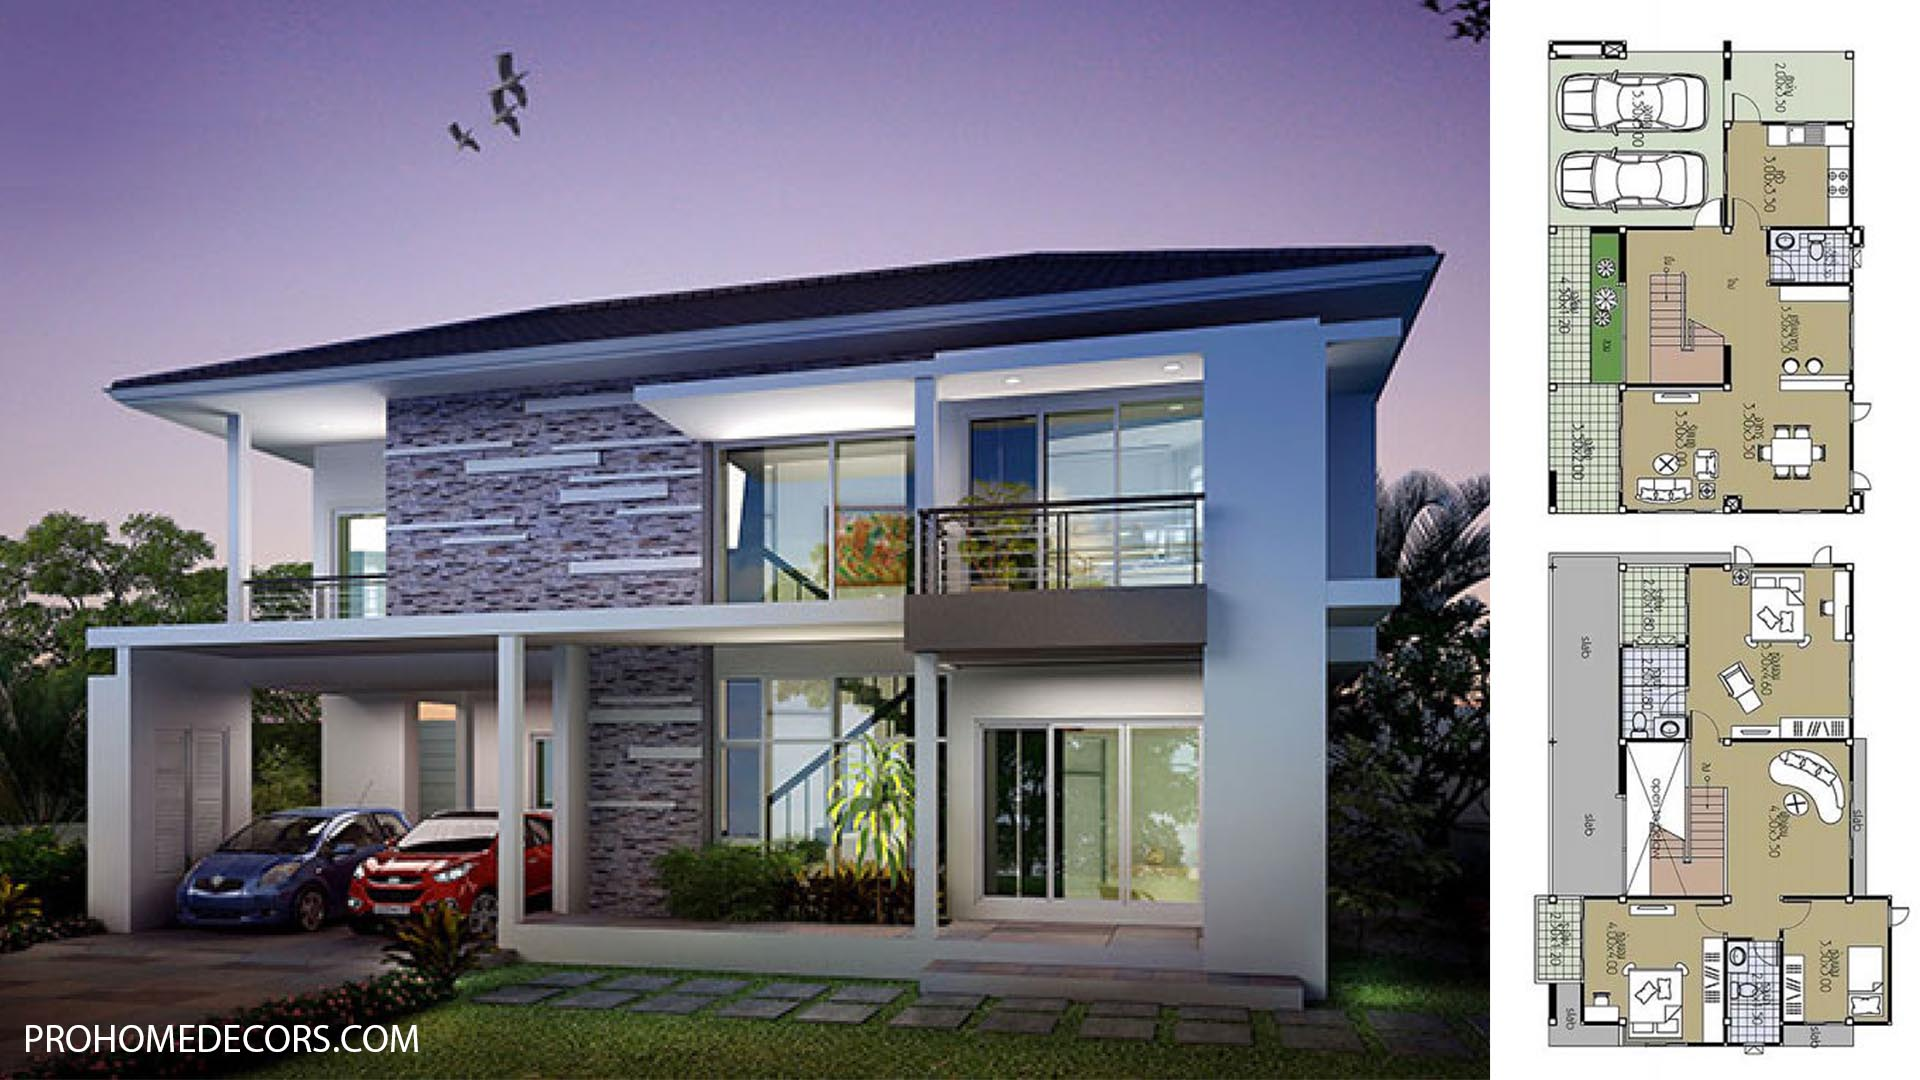 House Plans 12.5×8.5 with 3 Bedrooms